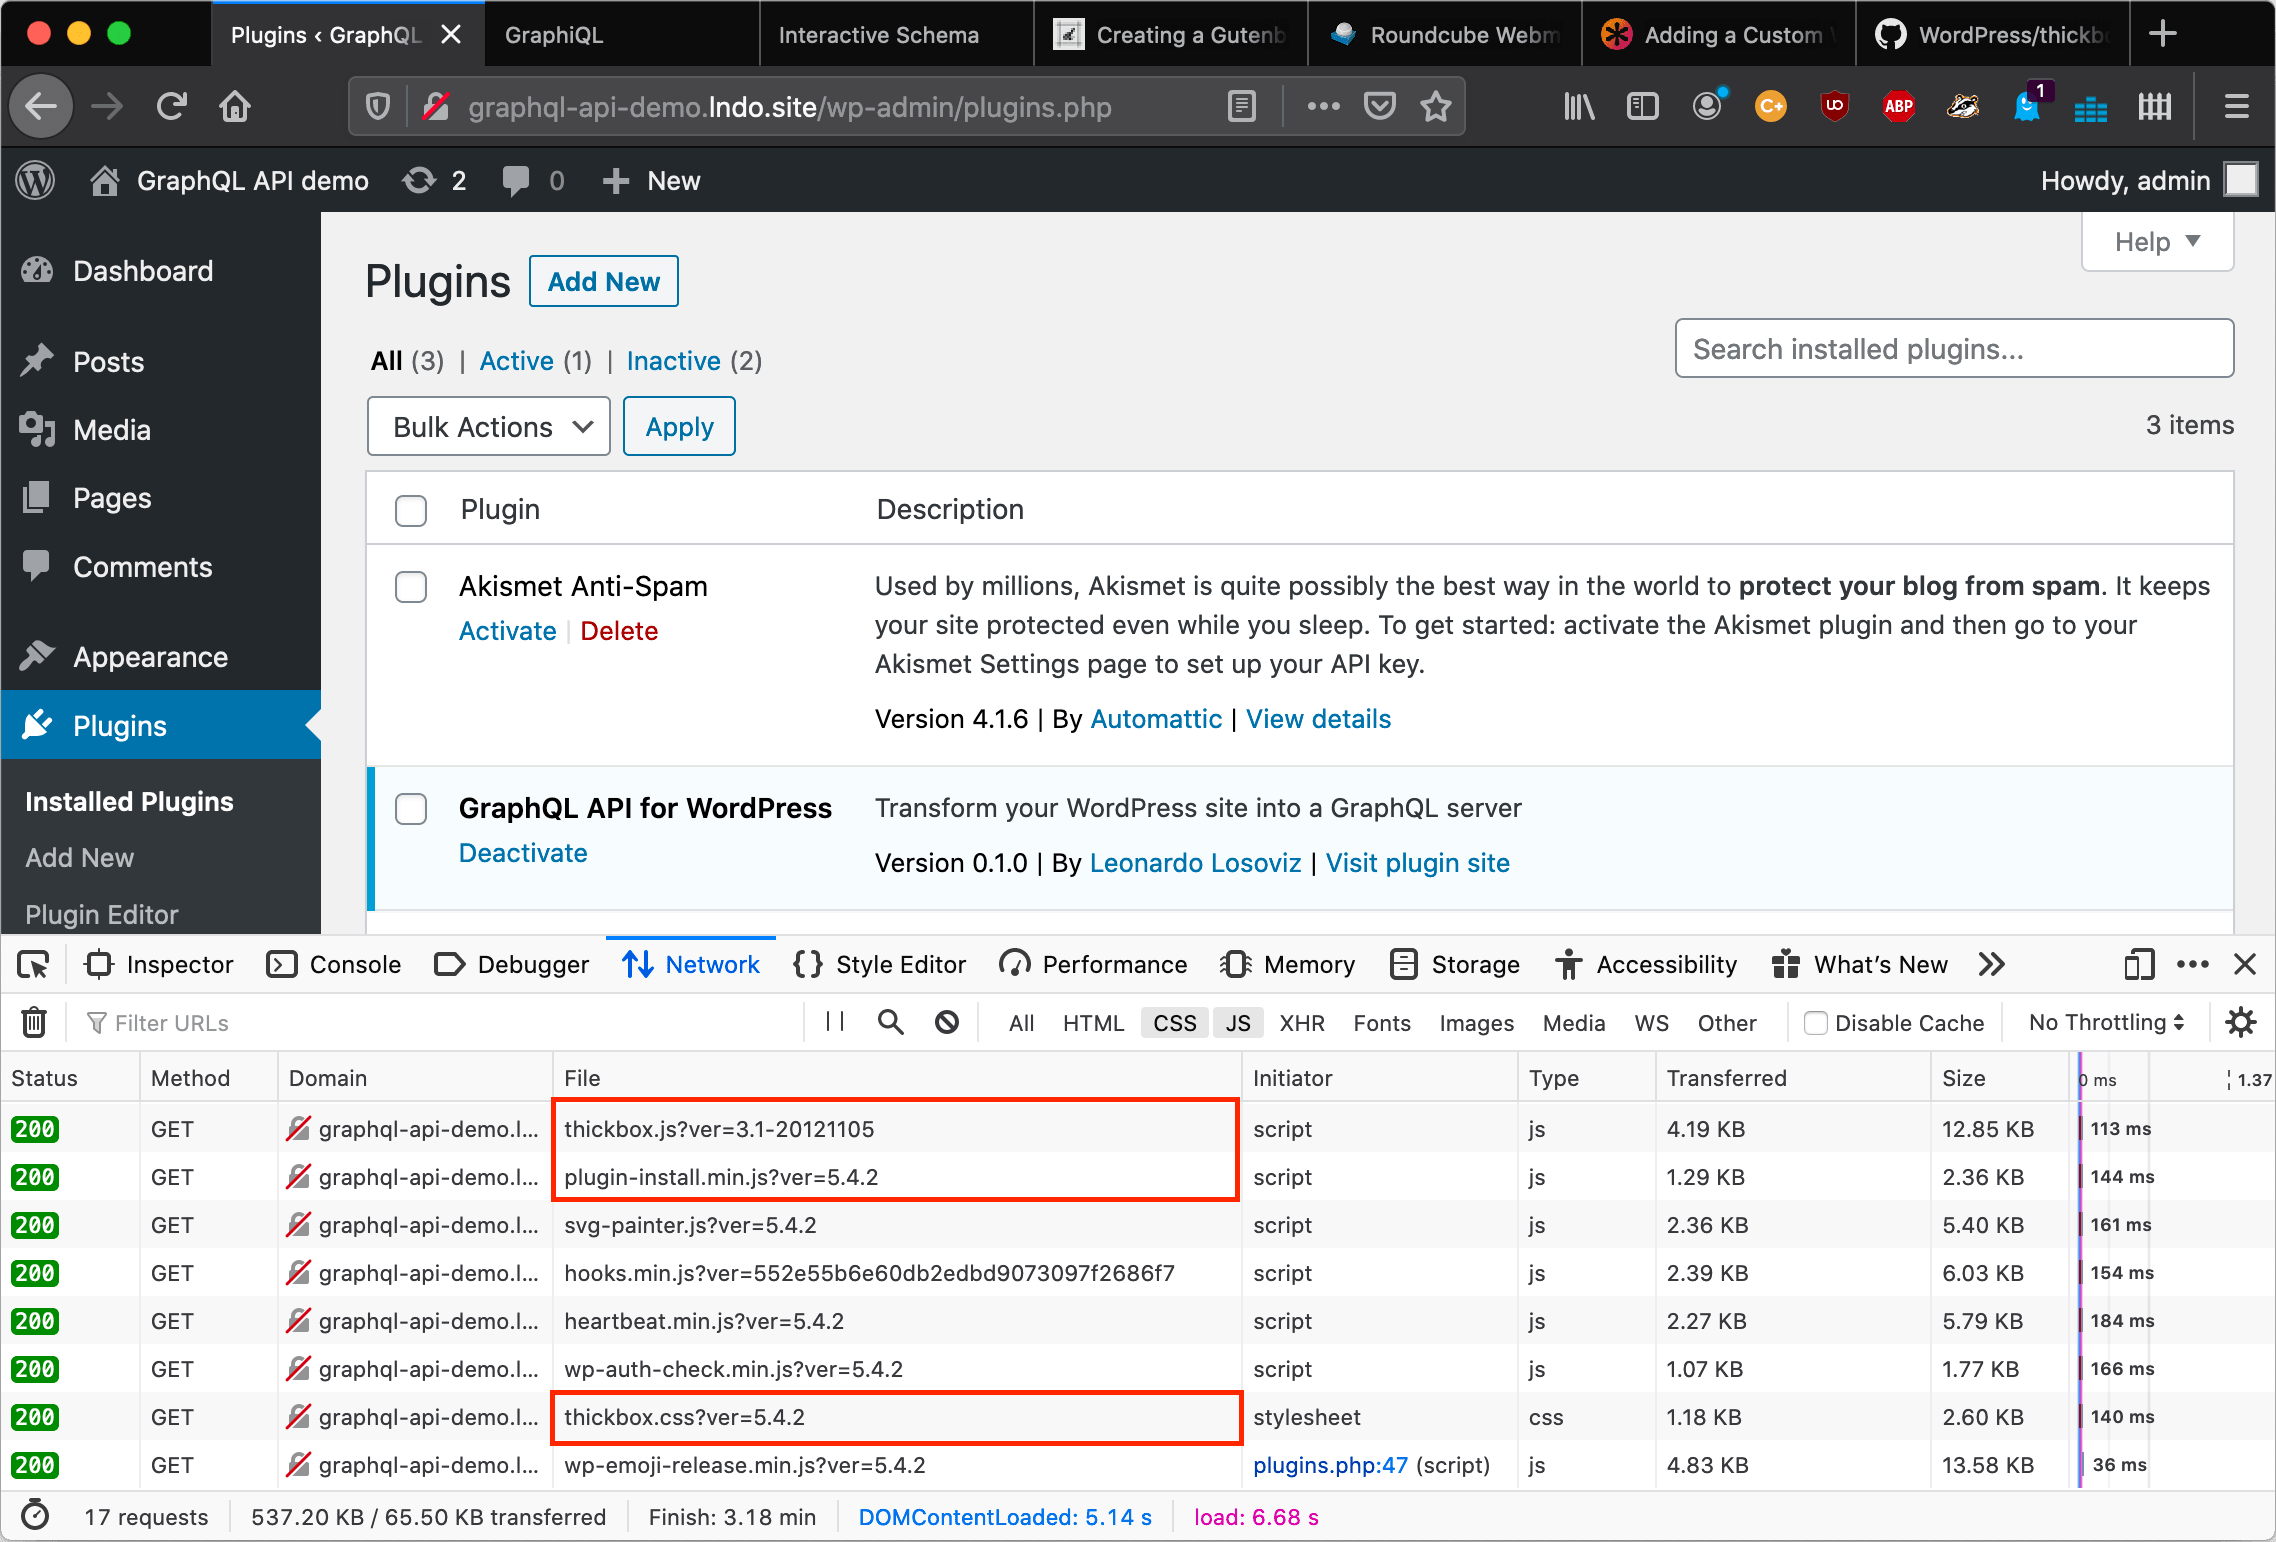 Loaded assets in the plugins page